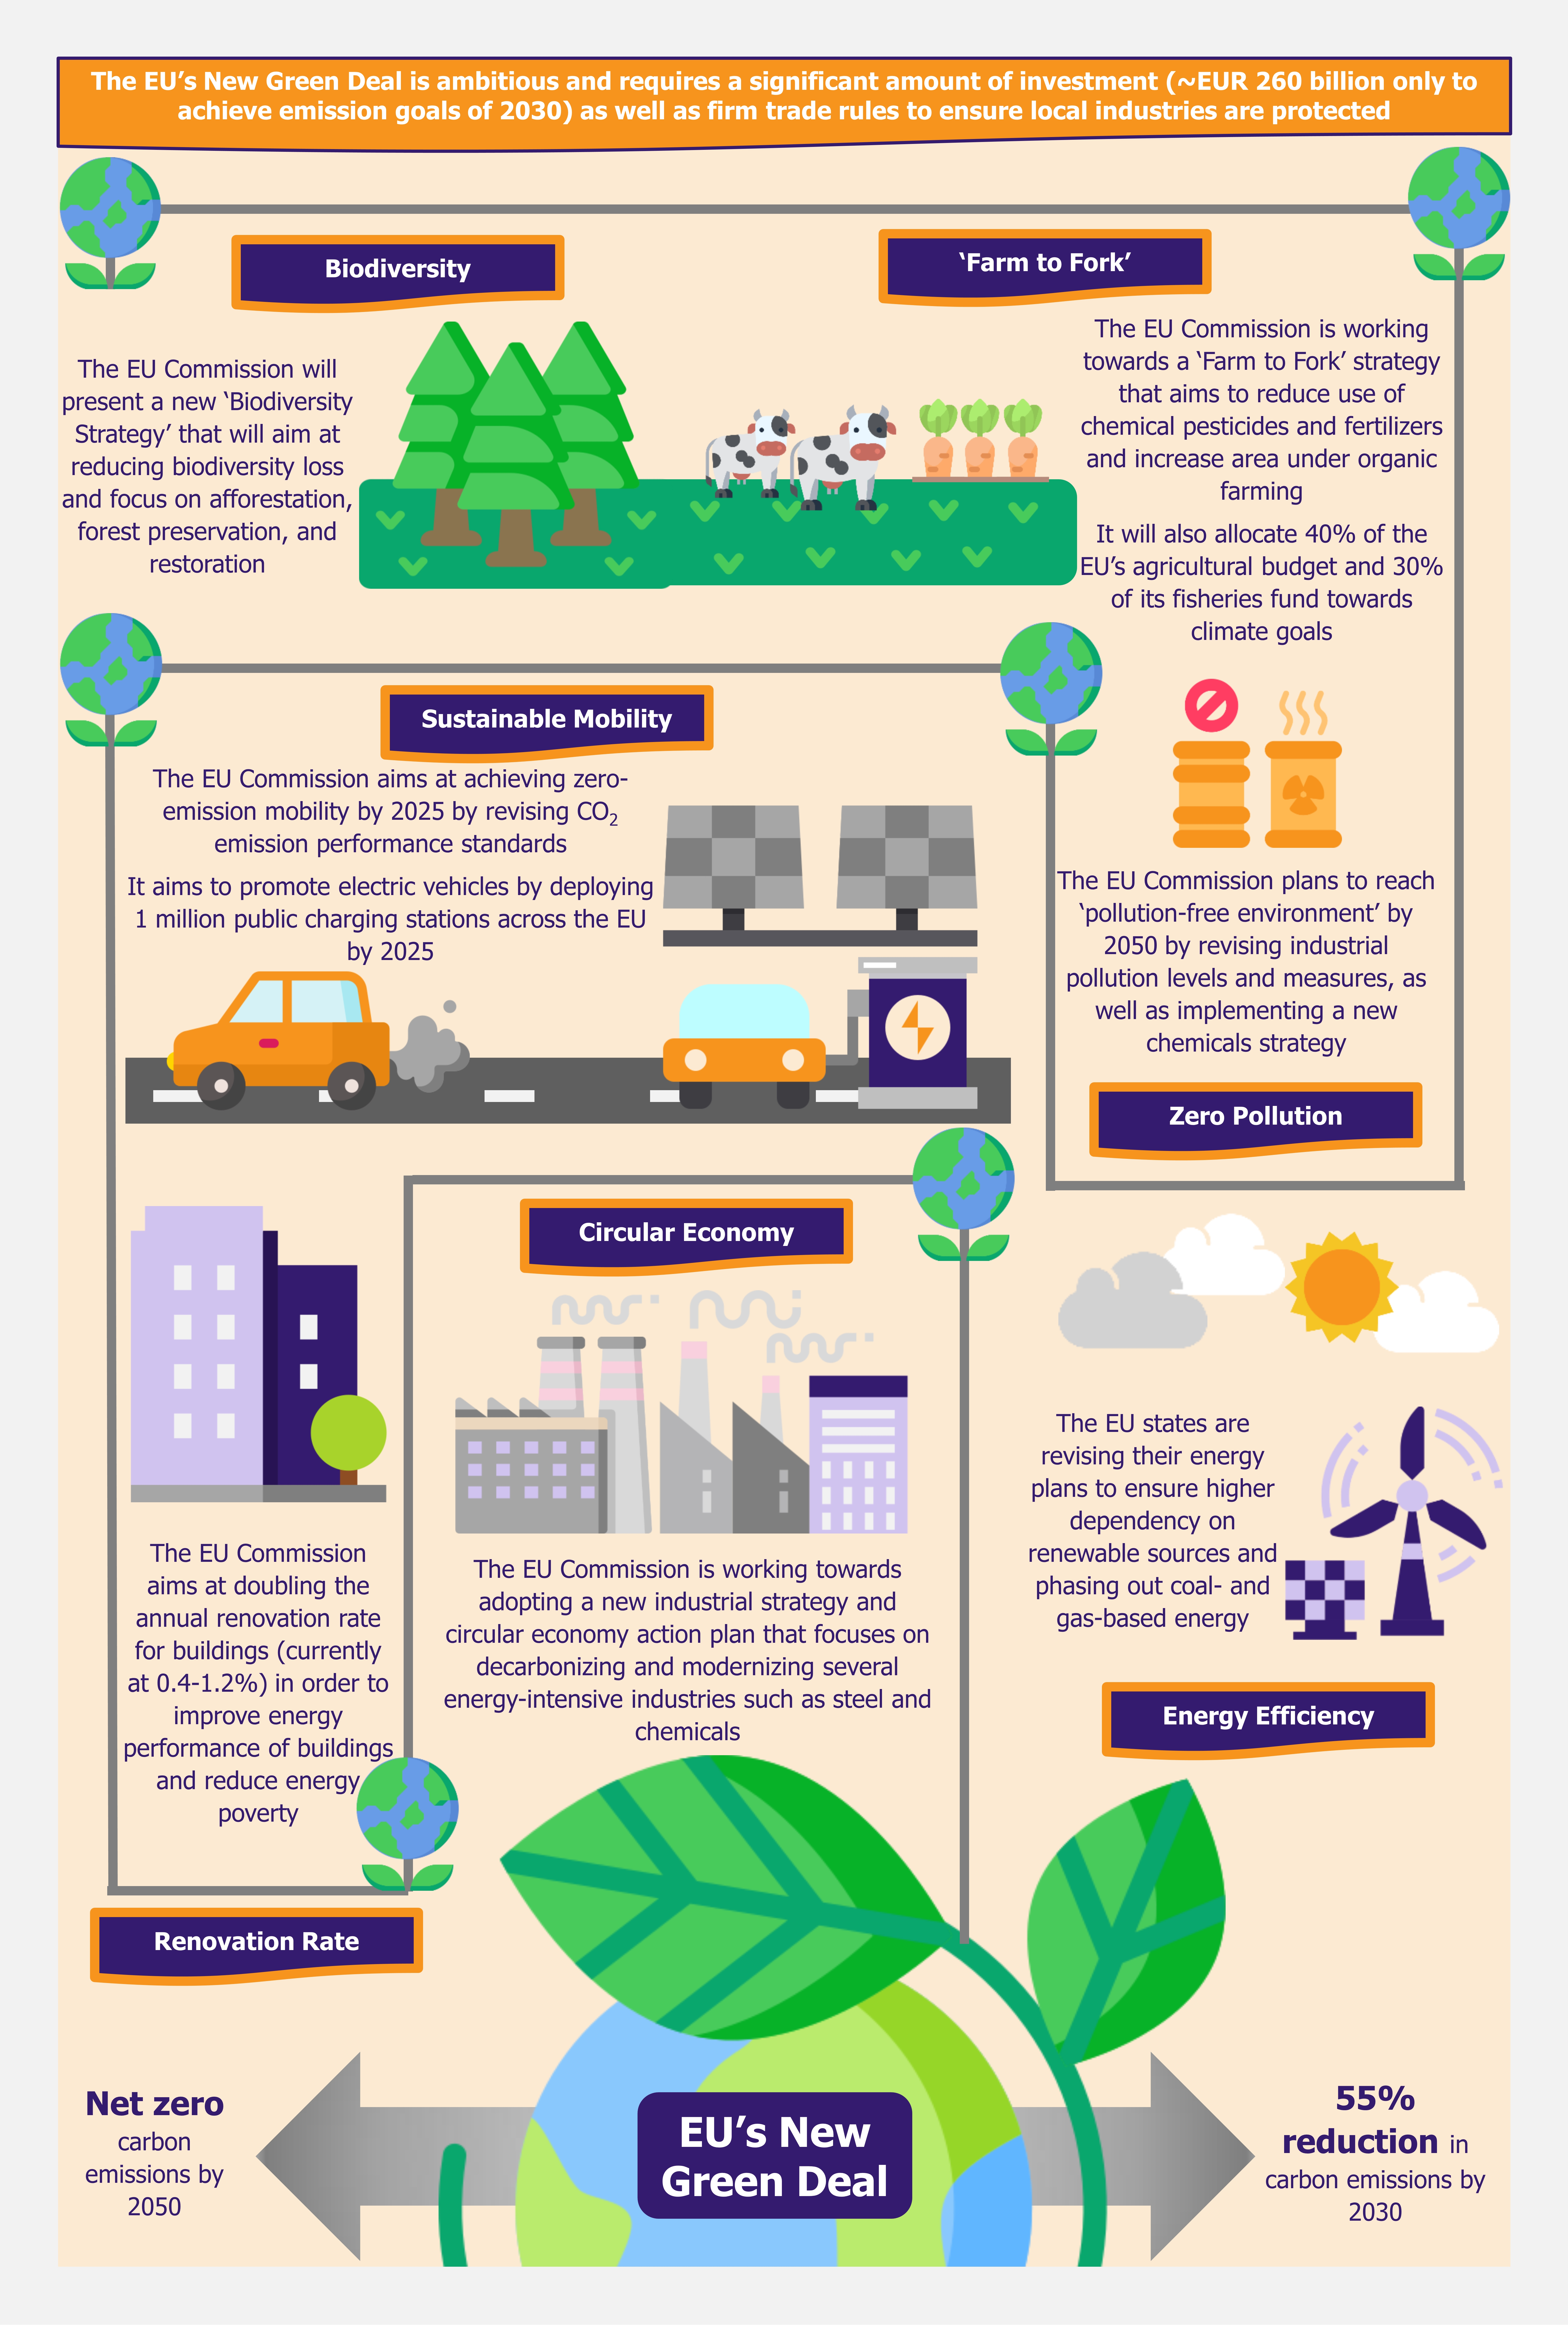 The EU Green Deal – Good on Paper but Is That Enough by EOS Intelligence